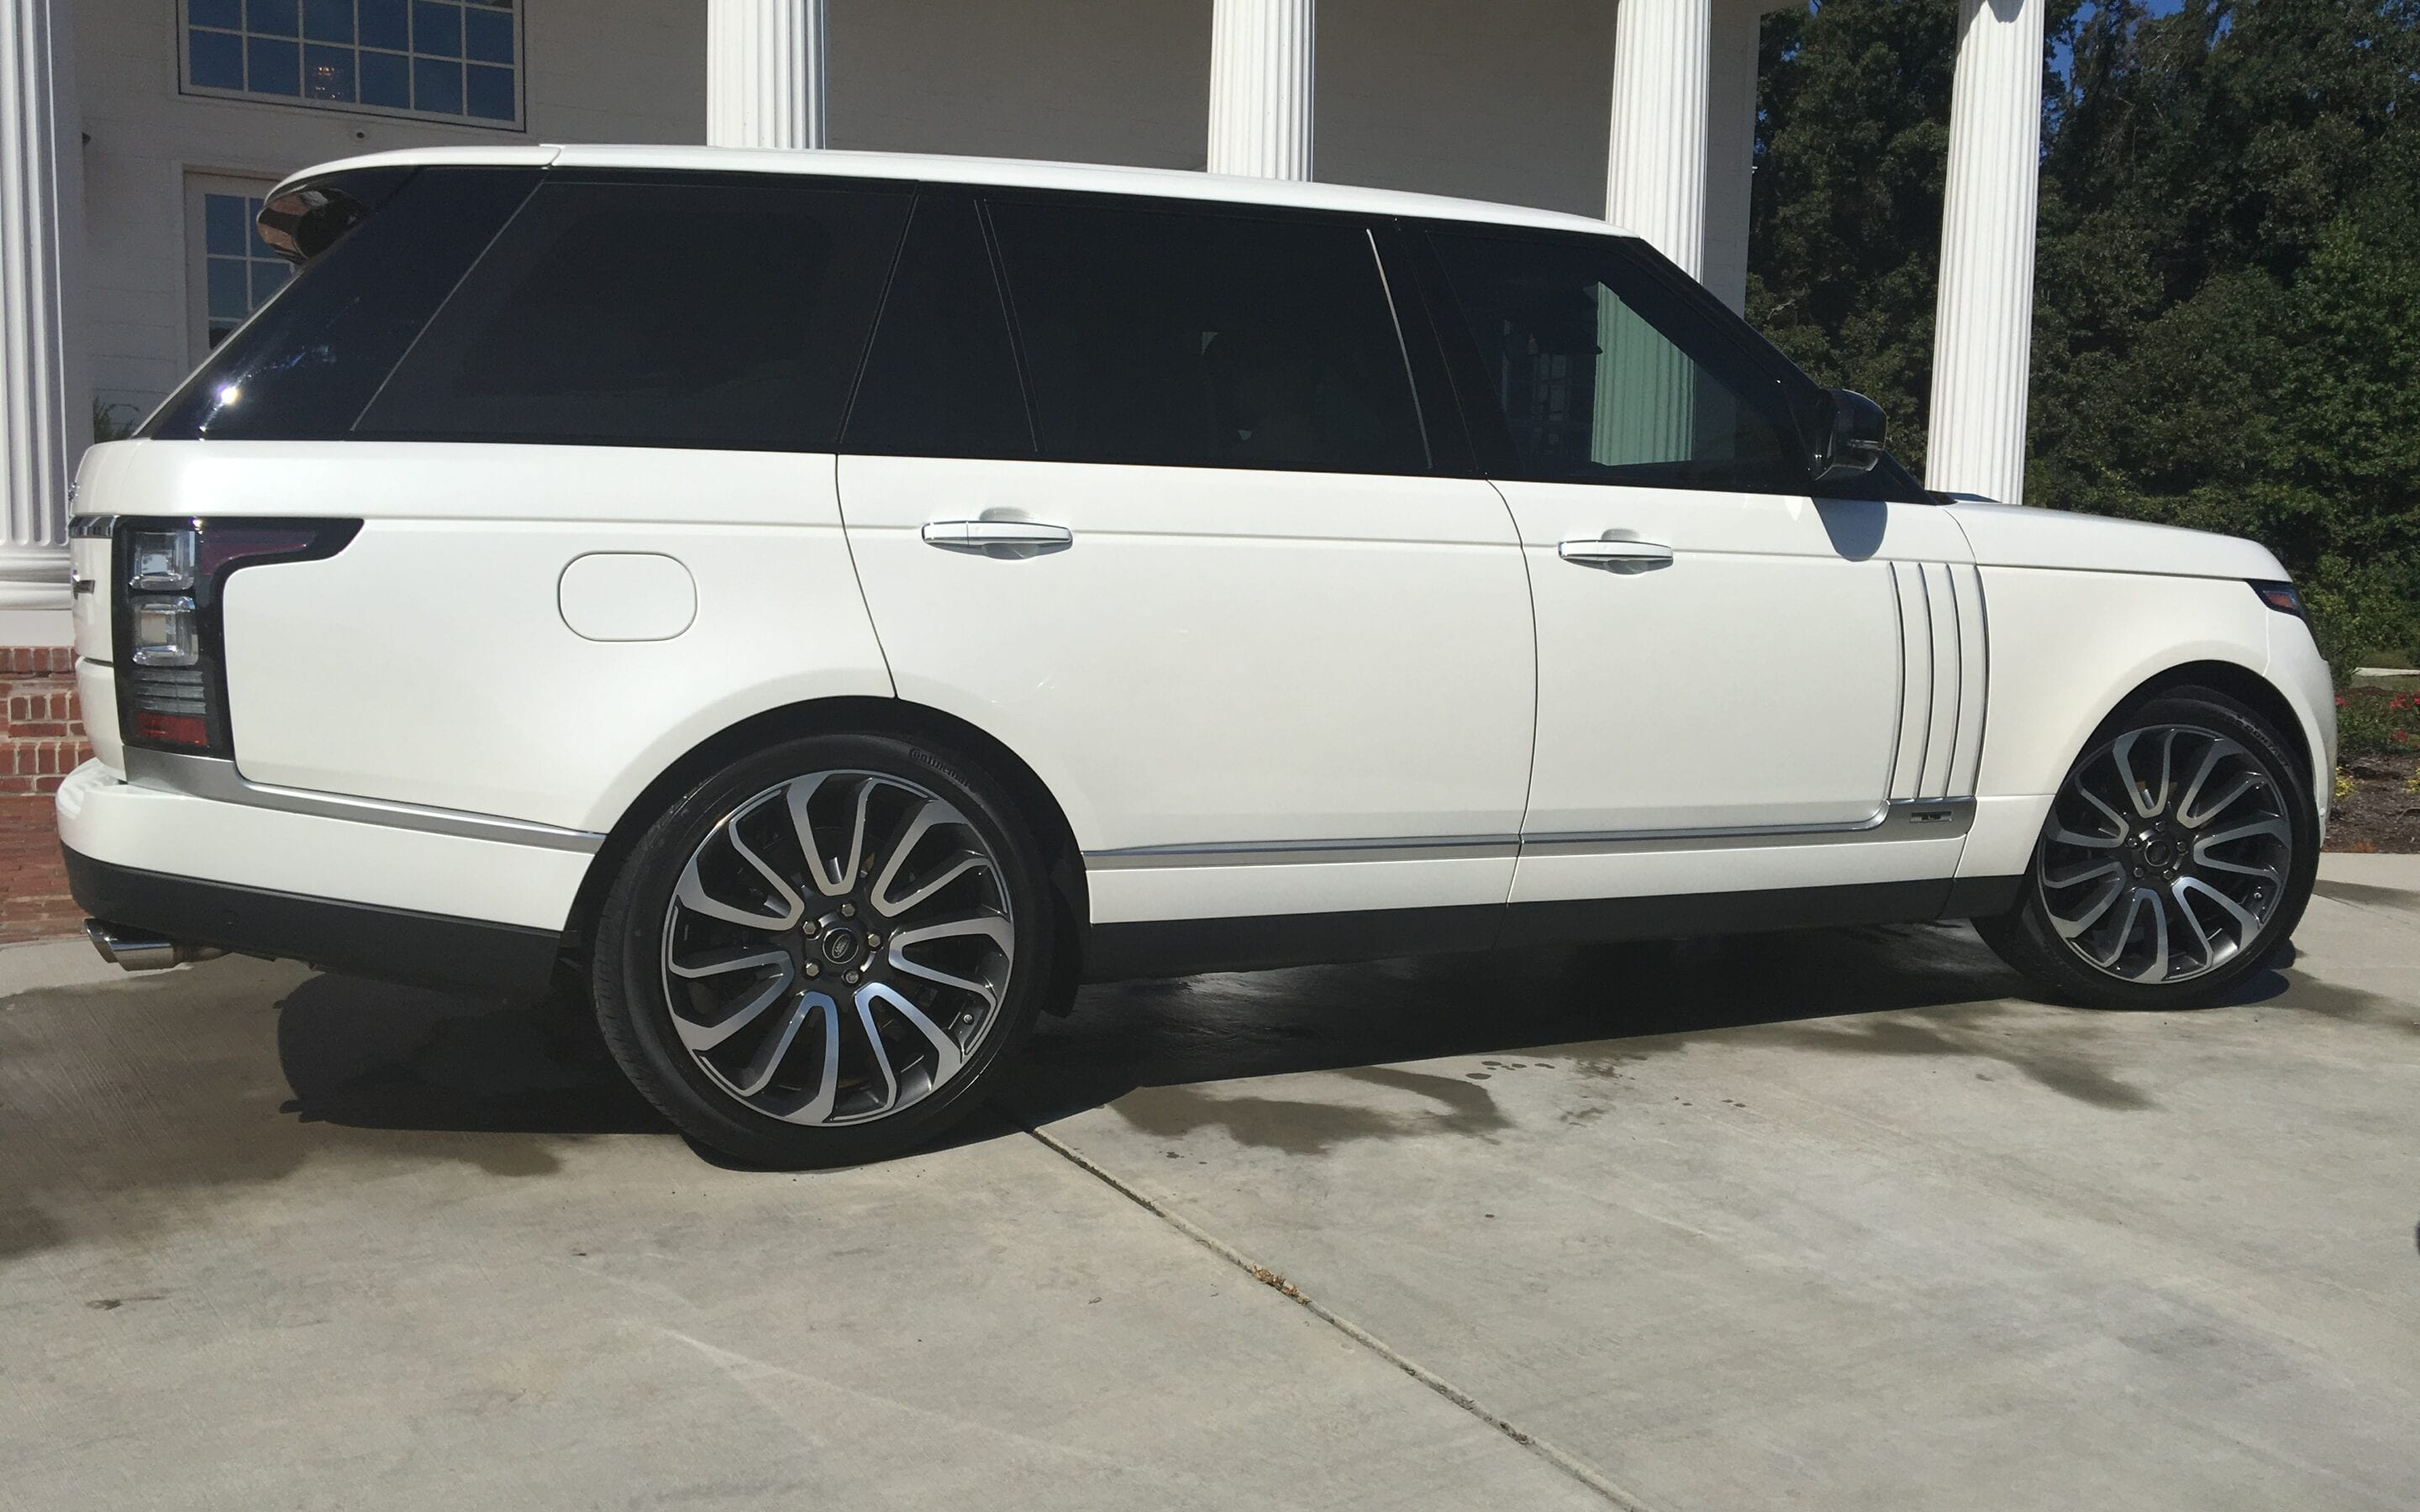 Photos of finished 2017 Range Rover Land Rover